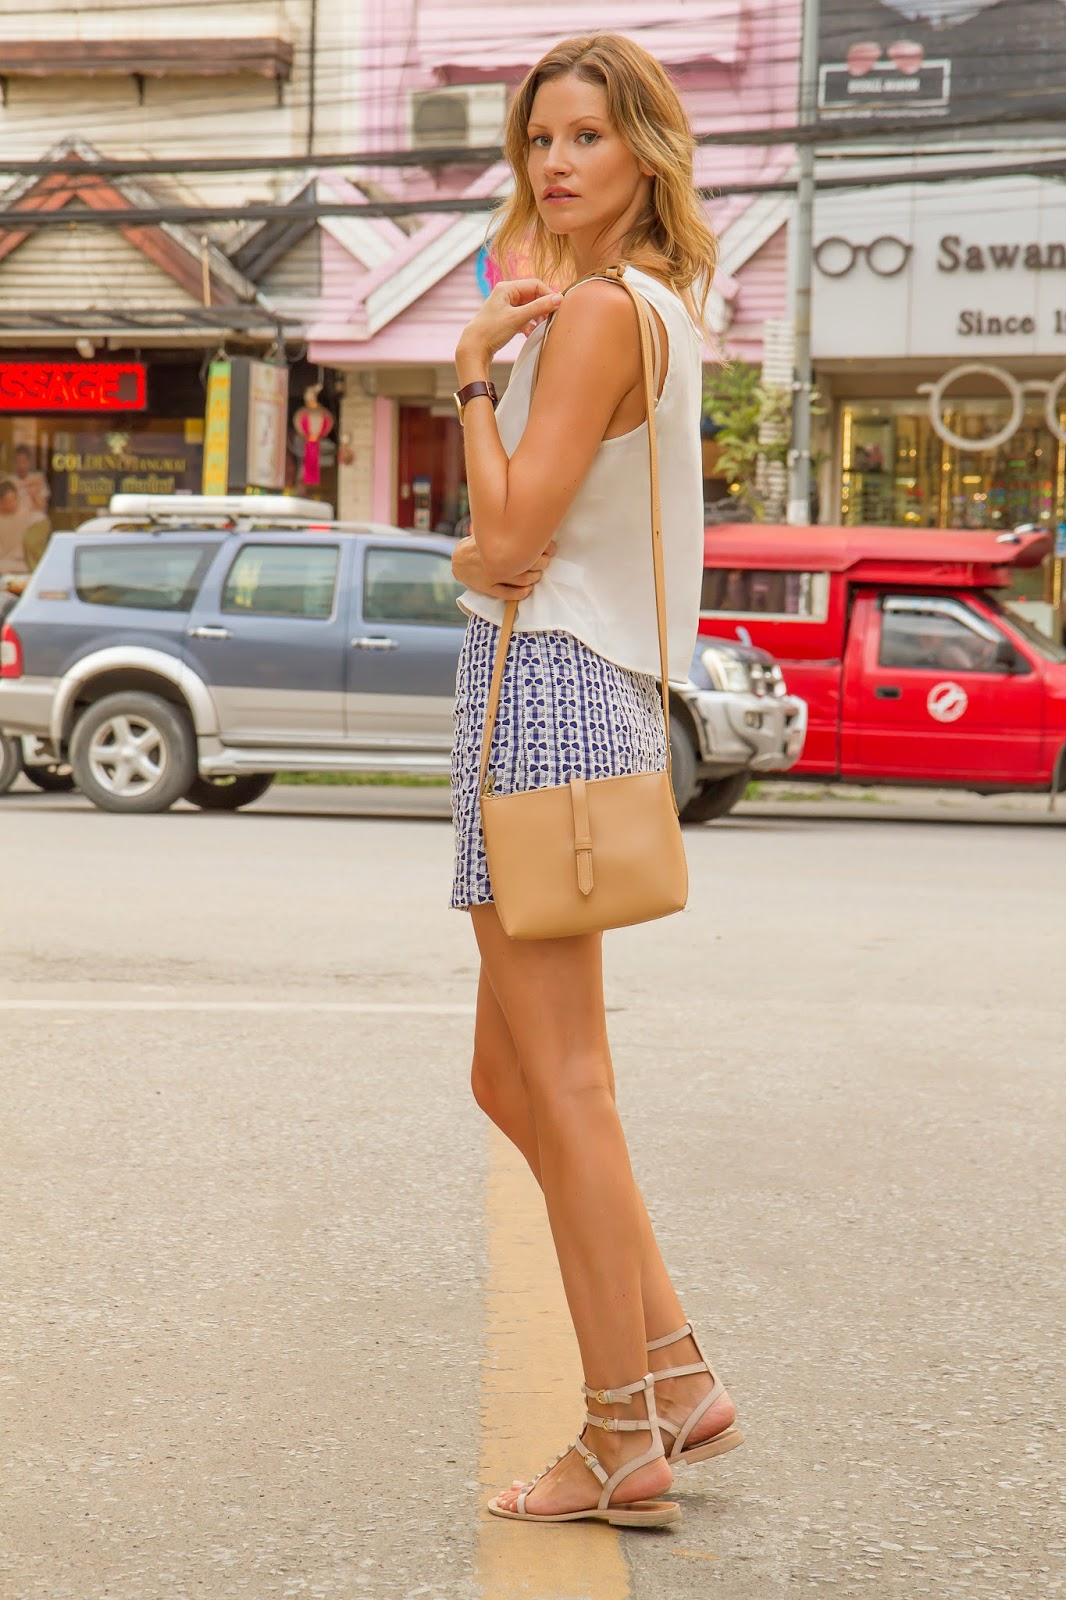 fashion and travel blogger, Alison Hutchinson, is wearing a blue mini skirt and white crop top in Chiang Mai, Thailand